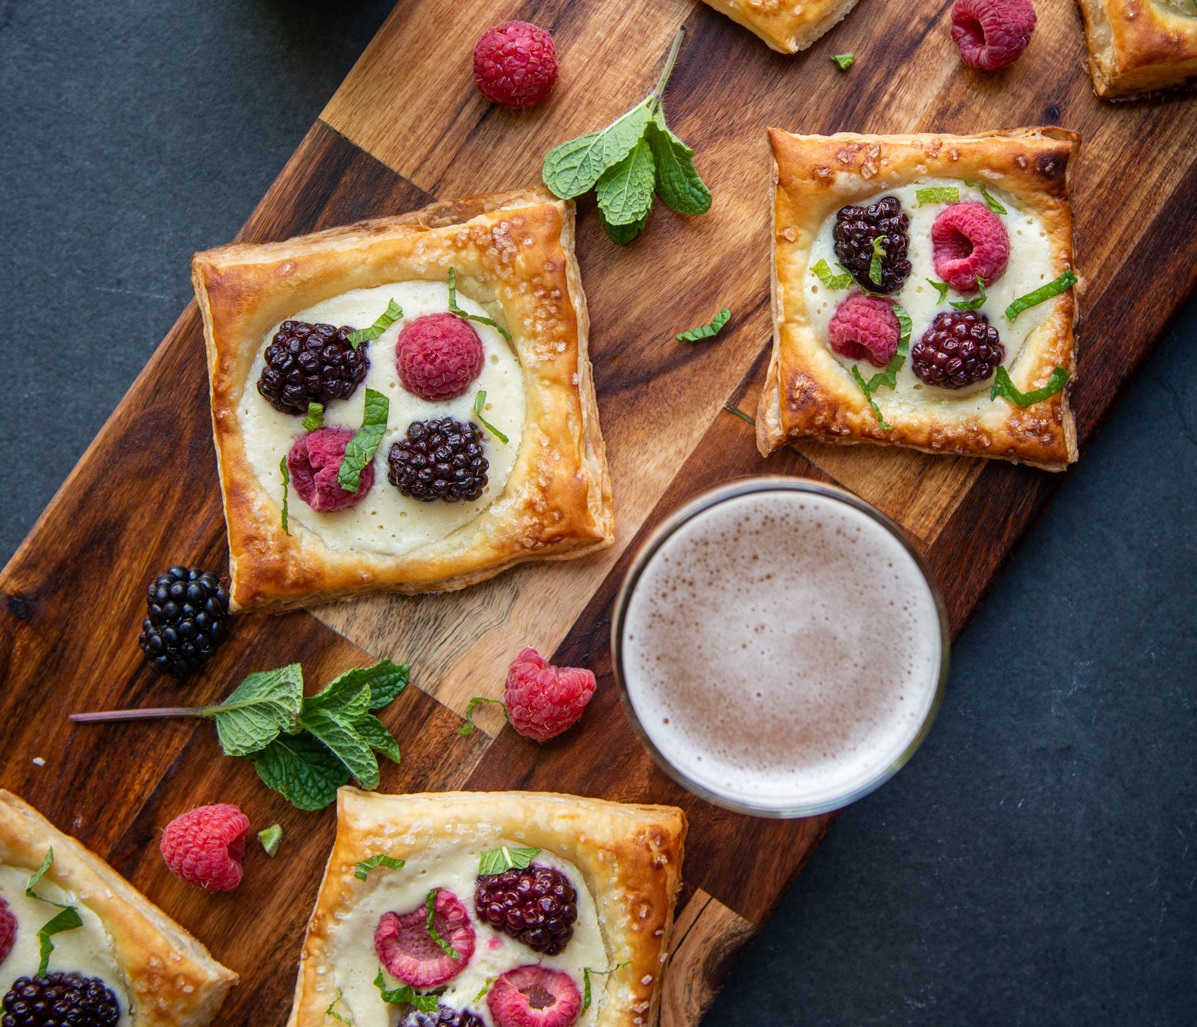 Mixed Berry Beer Breakfast Pastries